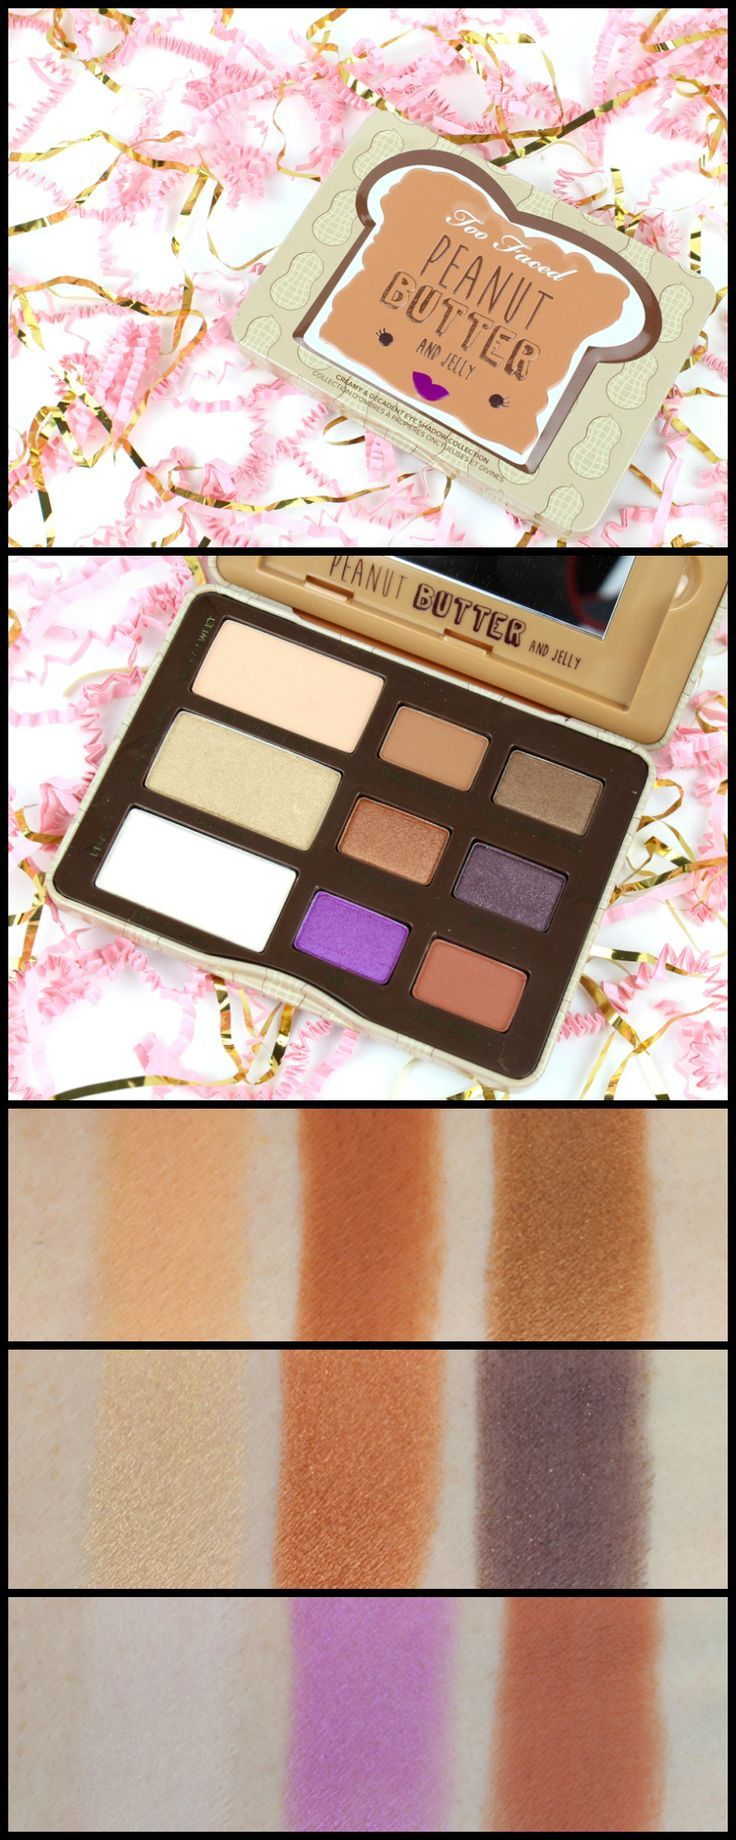 Too Faced Peanut Butter and Jelly Palette Review, Photos